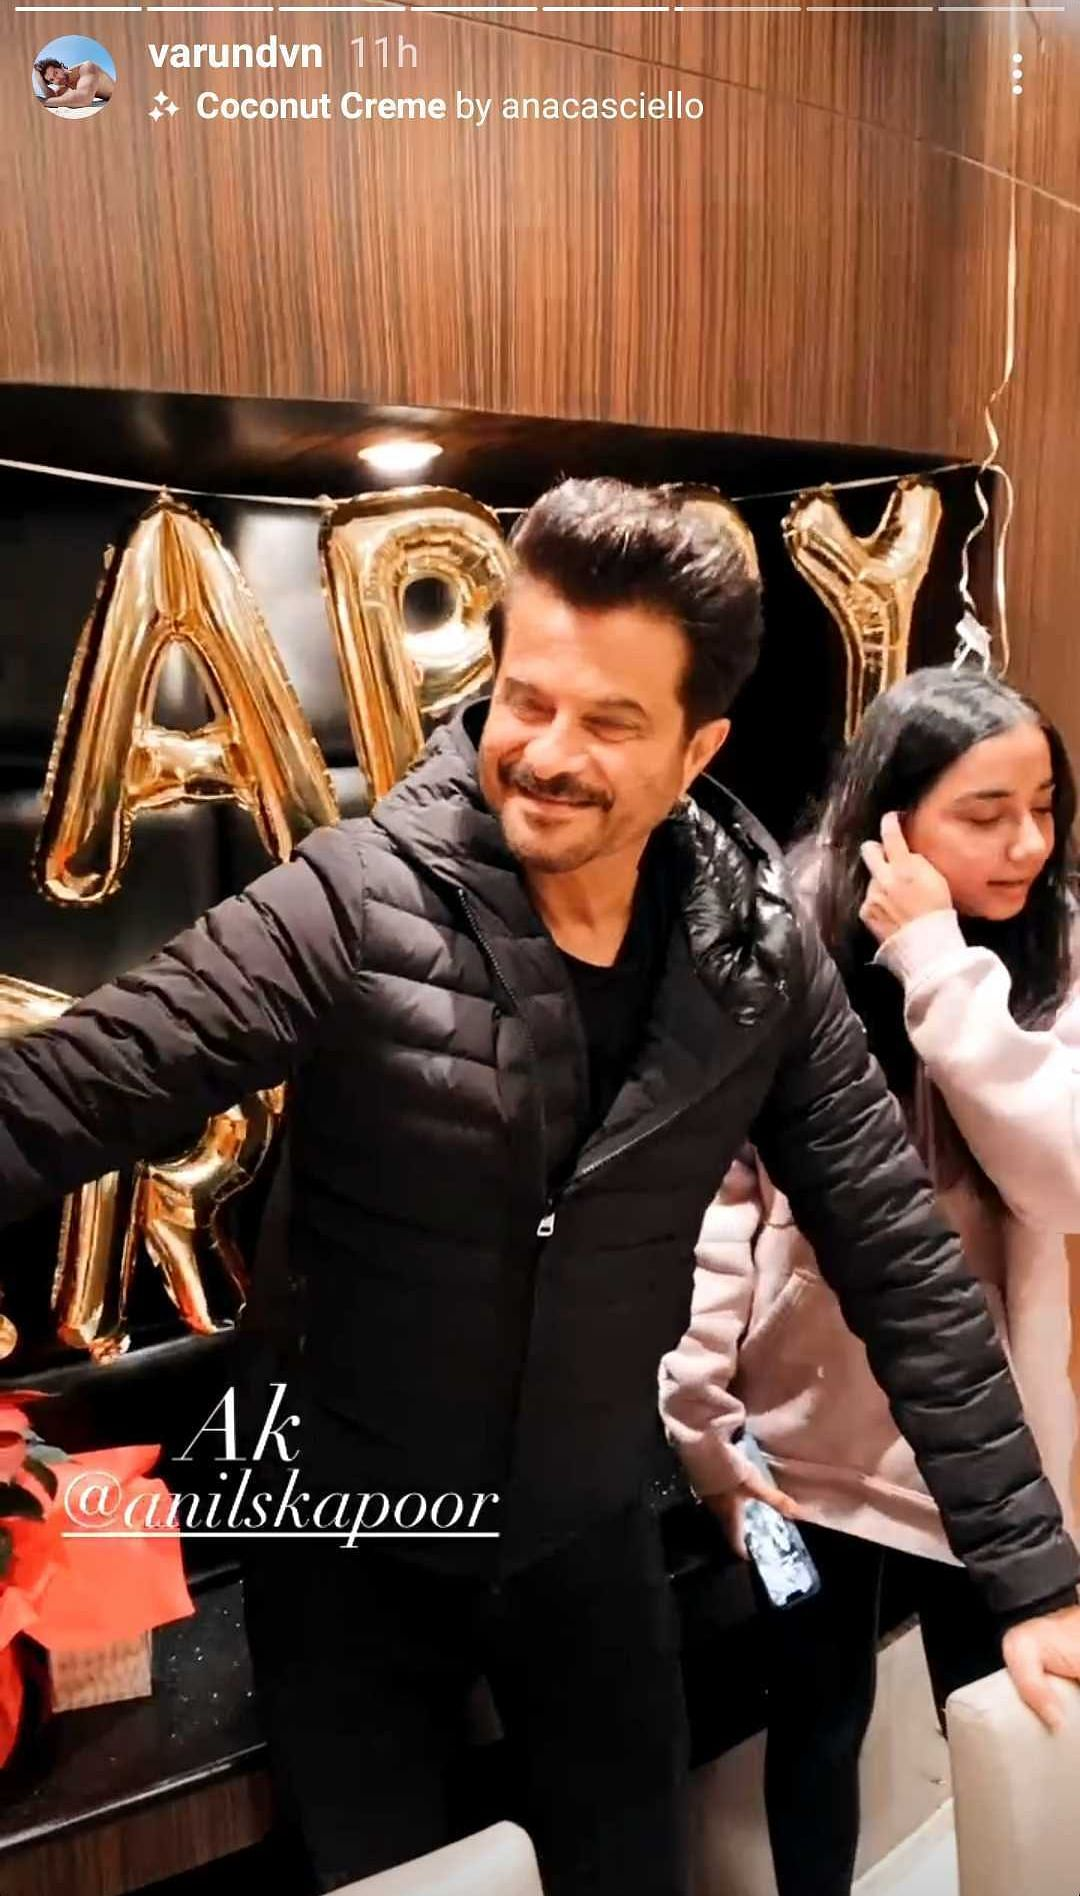 In Pics: Anil Kapoor celebrates 64th birthday with Kiara Advani, Varun Dhawan while filming 'Jug Jugg Jeeyo'